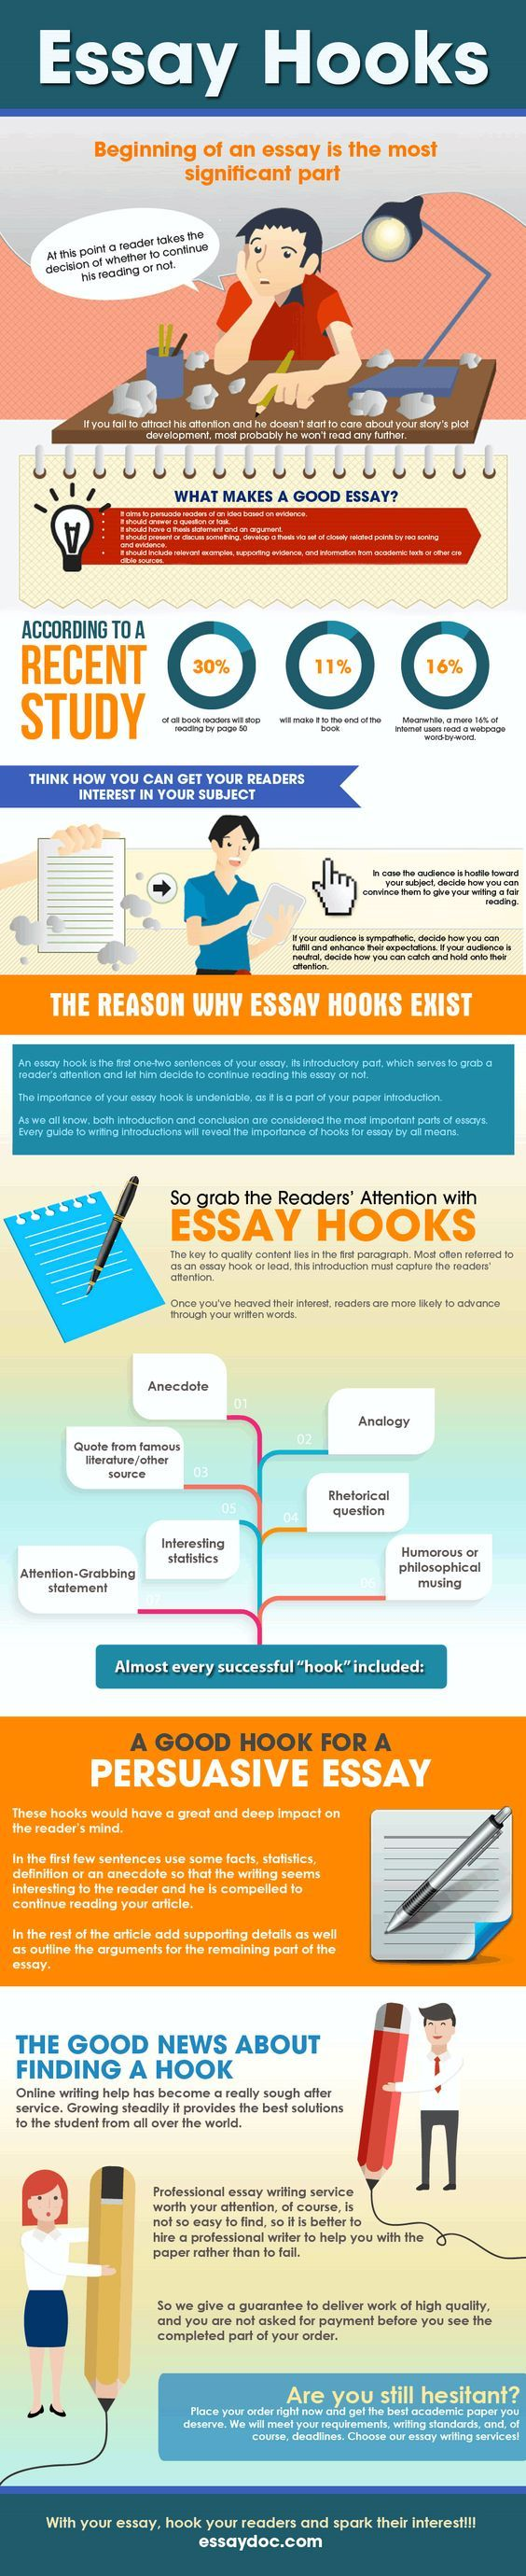 best ideas about cause and effect essay ela nice how to write a cause effect essay definition writing steps